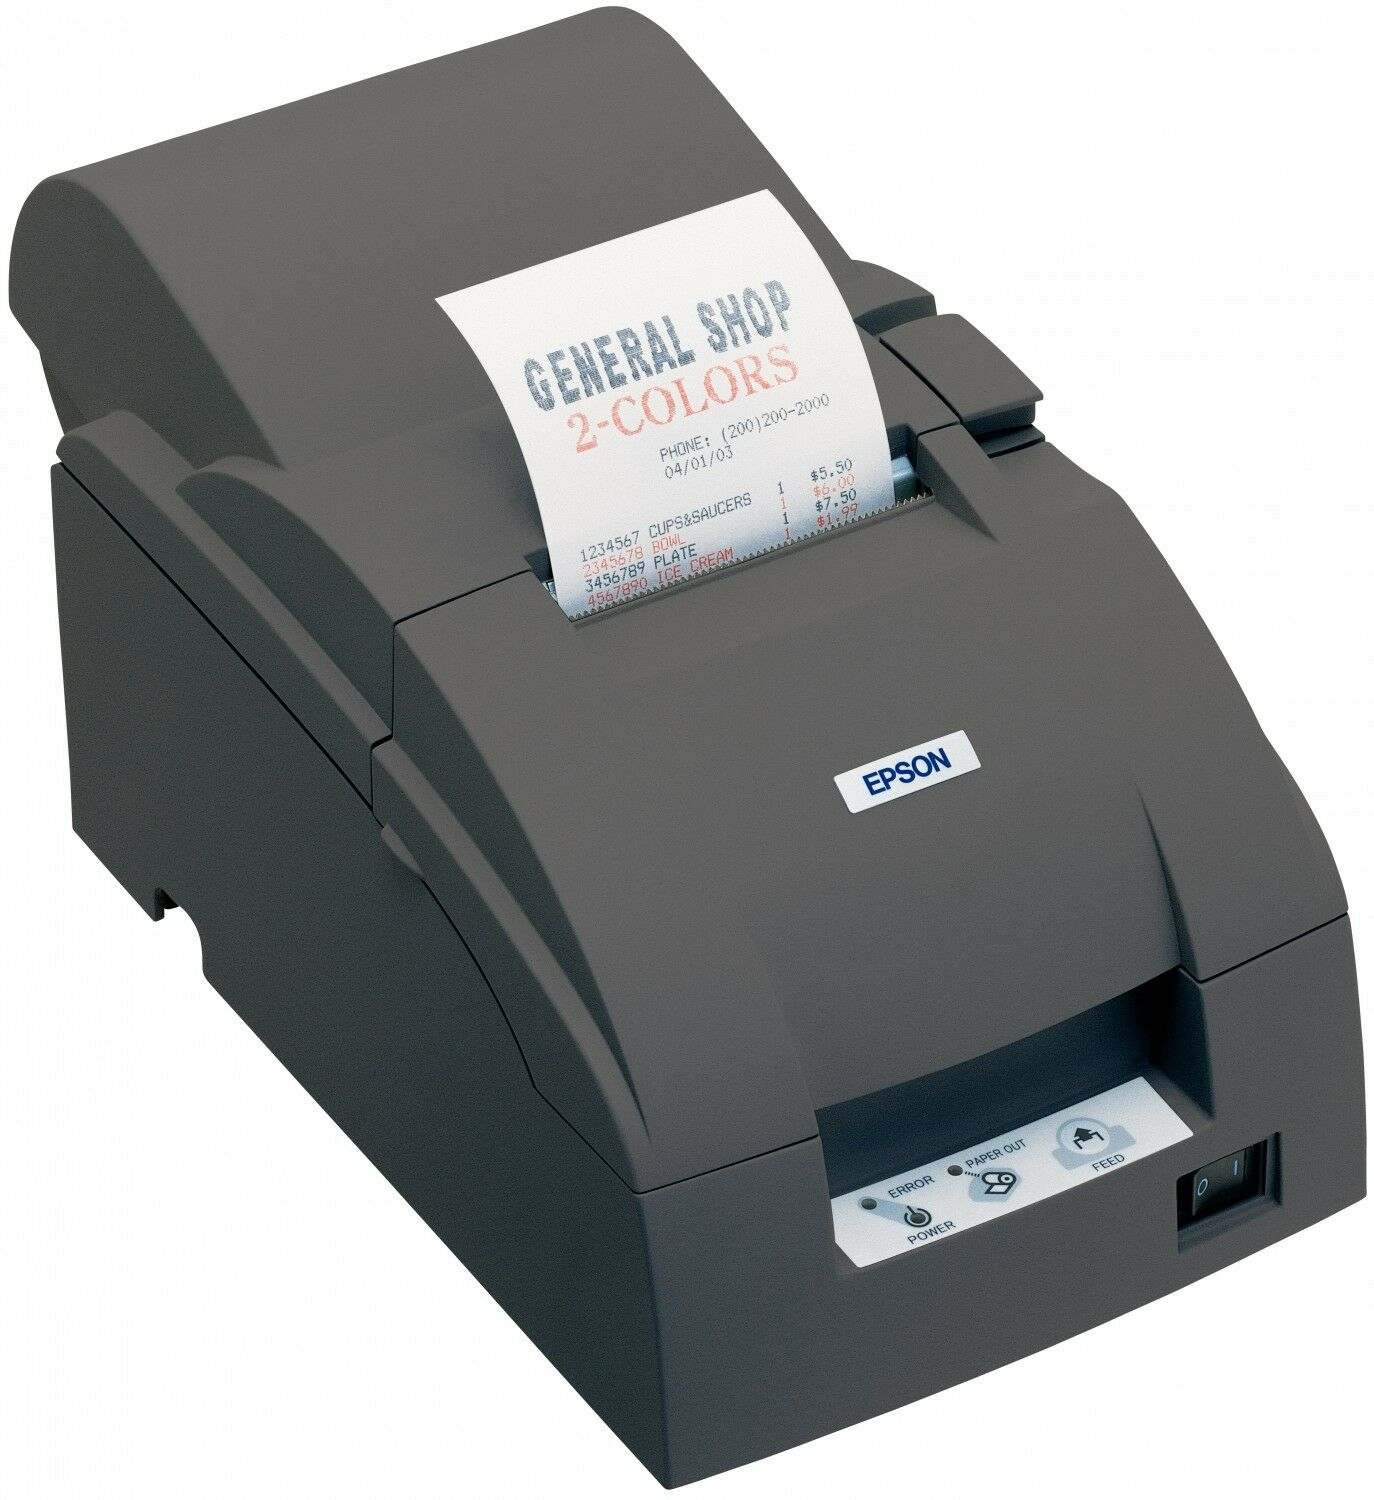 Epson TM-U220A Receipt POS Printer M188A - TM-U220A